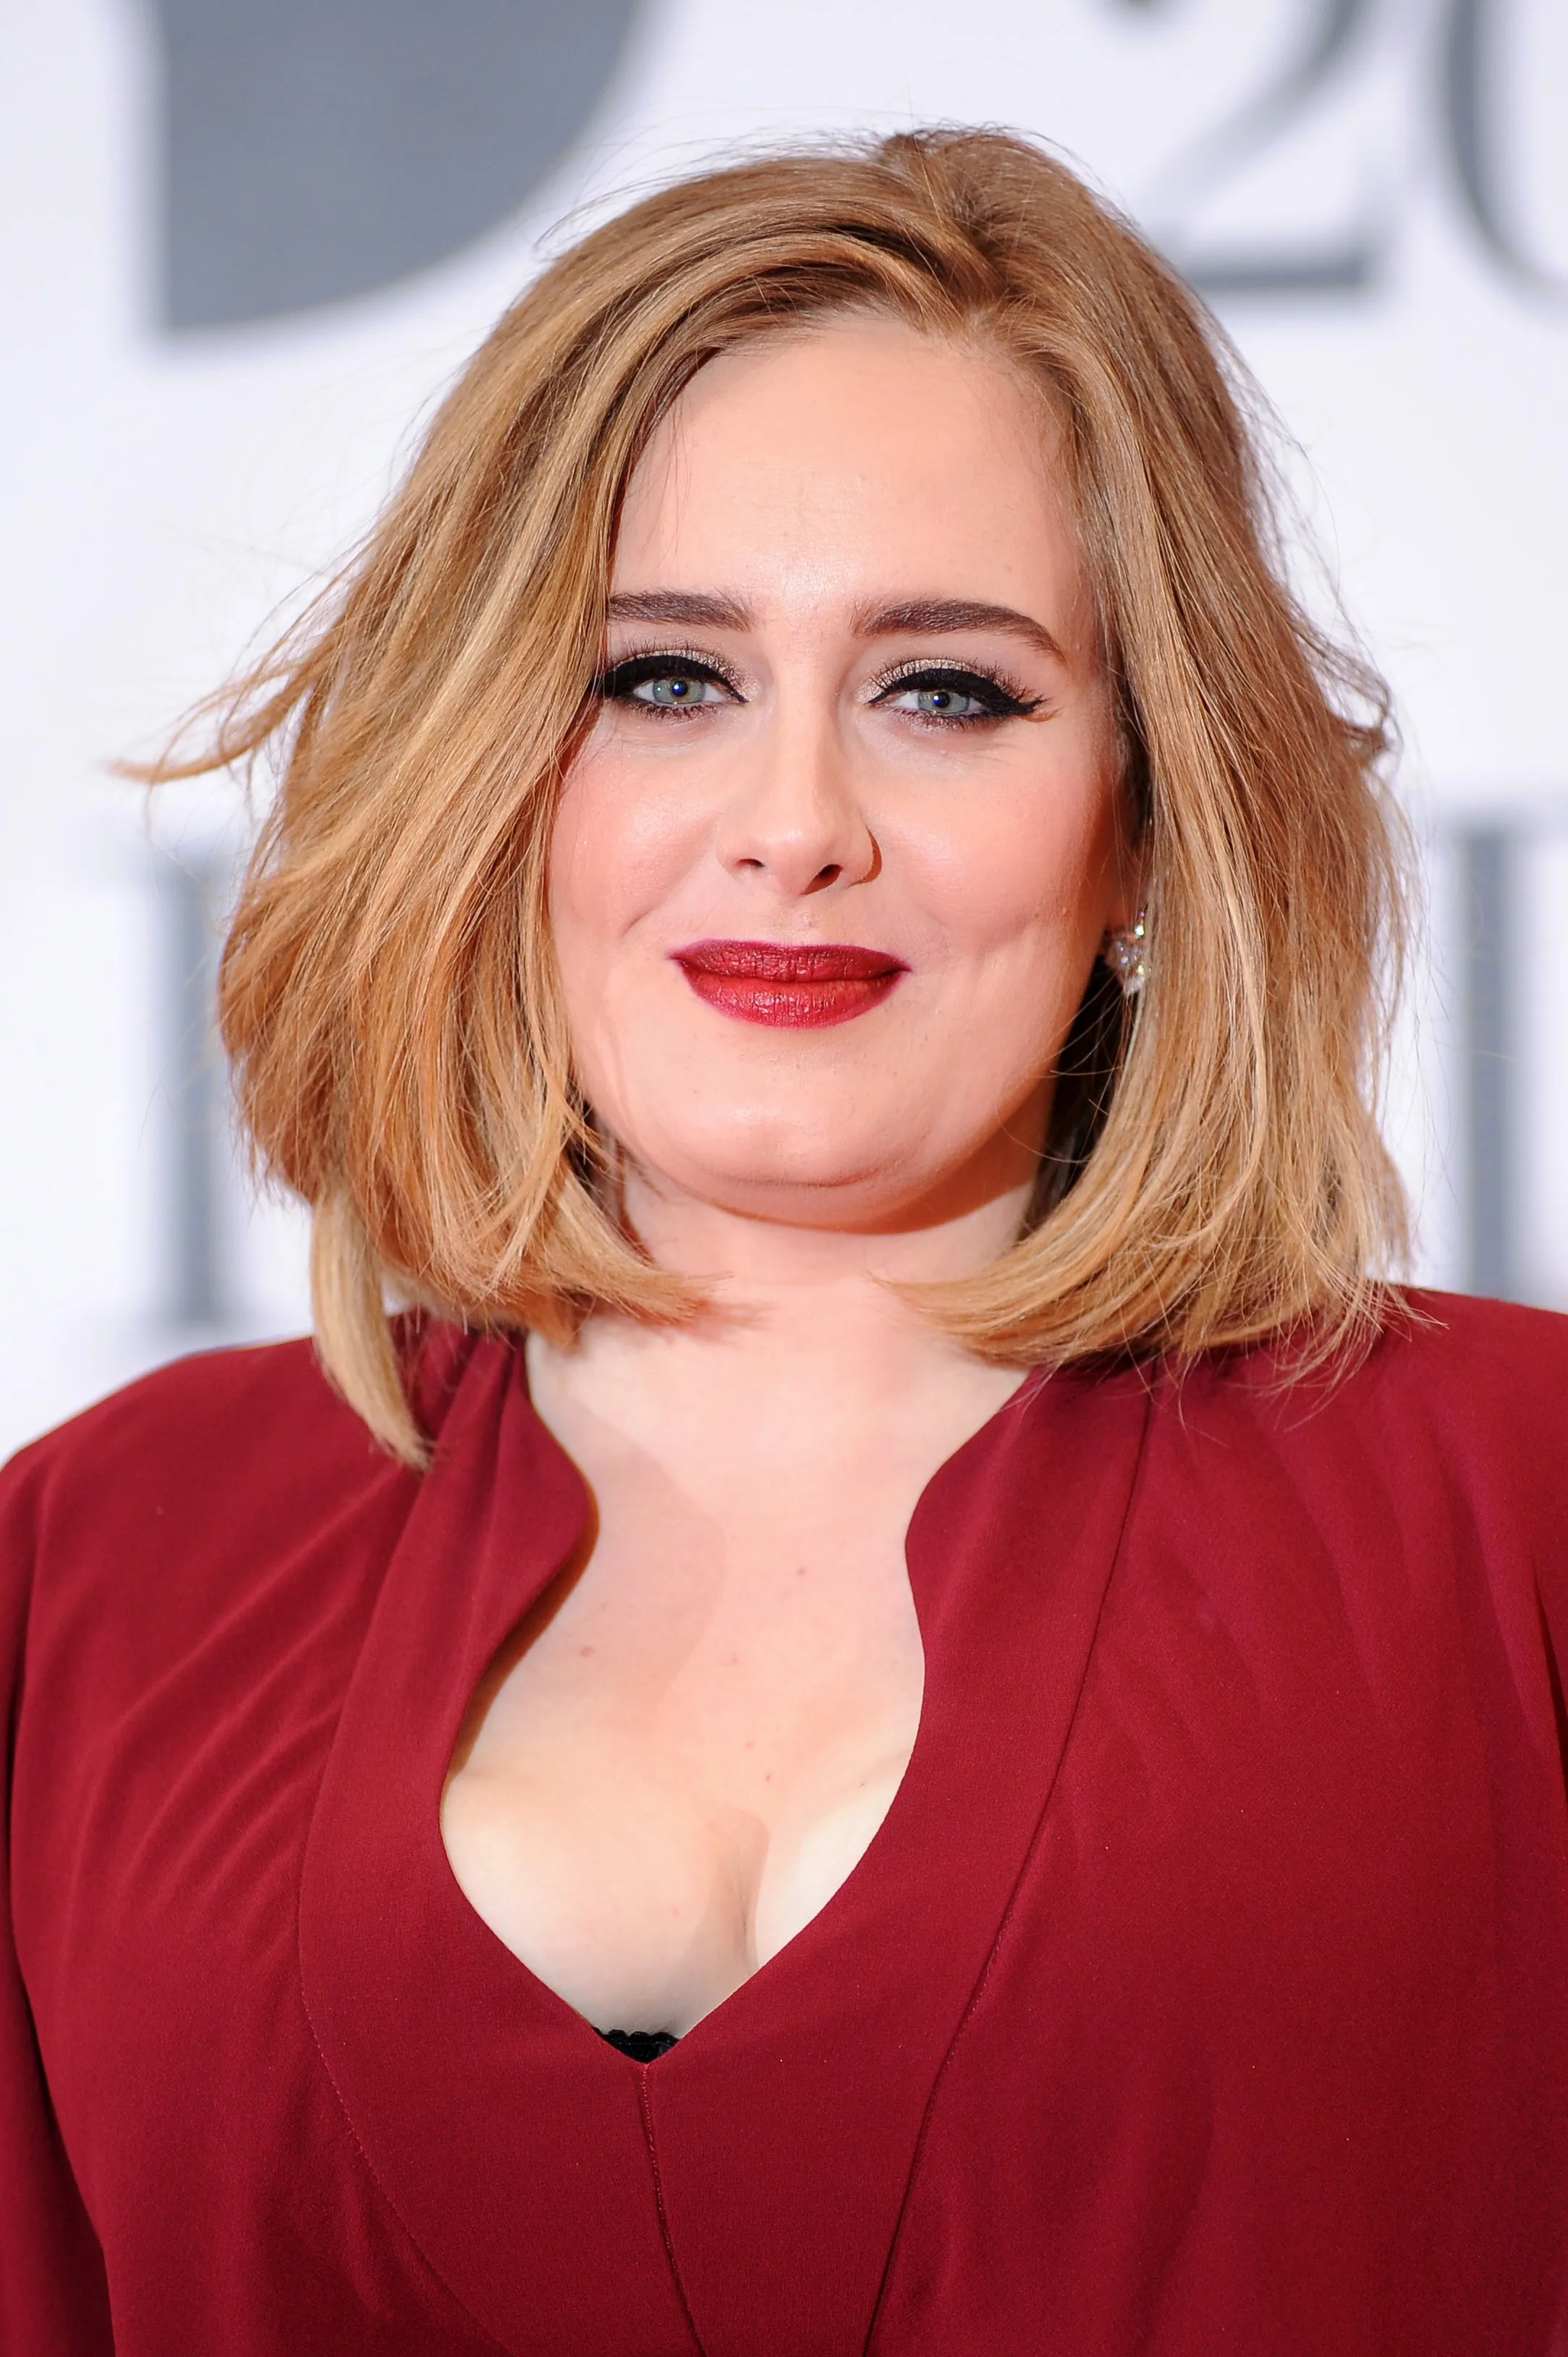 The Beauty Evolution Of Adele From Over The Top Glamour